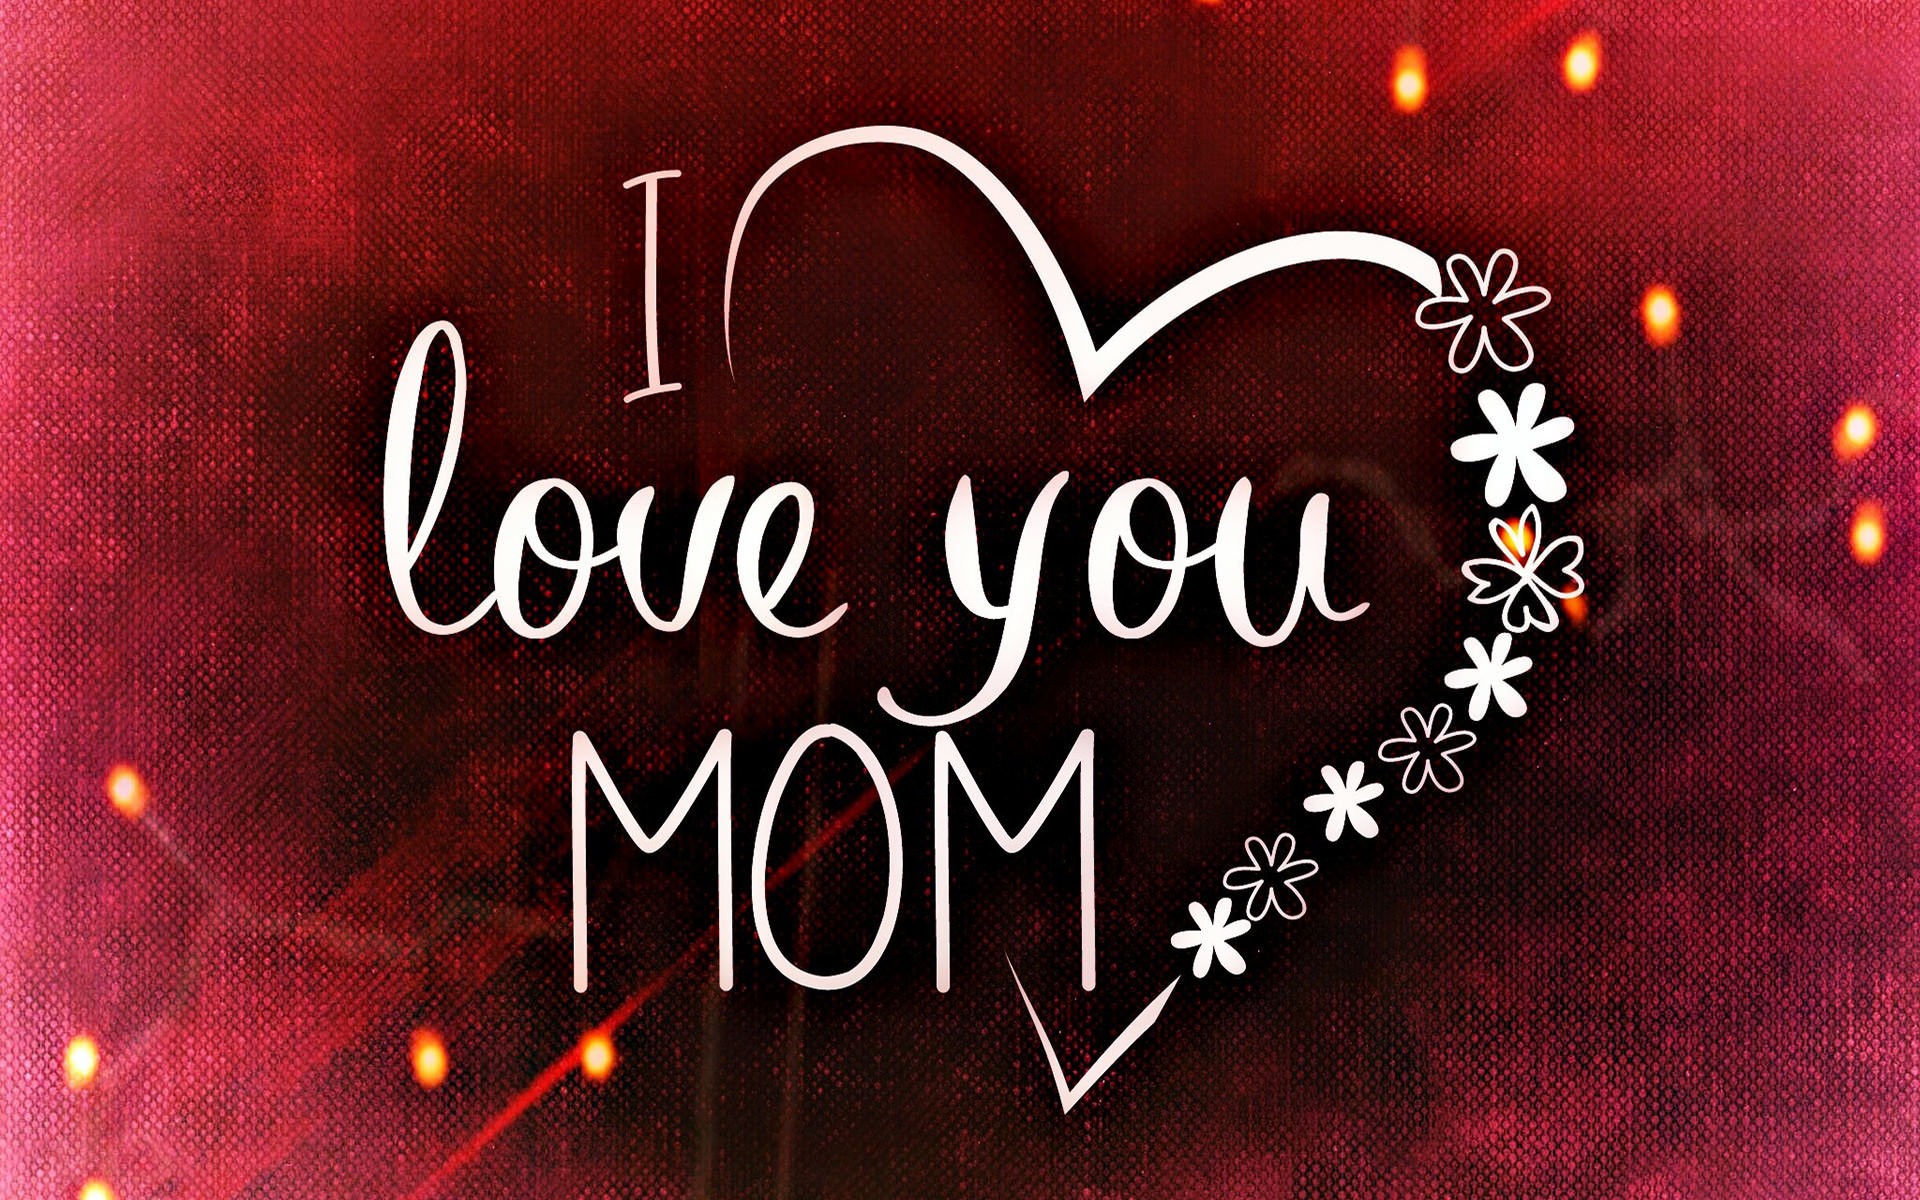 I Love You Mom Red Wallpapers Images Photos Hd Wallpapers Tumblr Pinterest  Istagram Whatsapp Imo Facebook Twitter – Heart Touching Fashion Summary  Amazon …